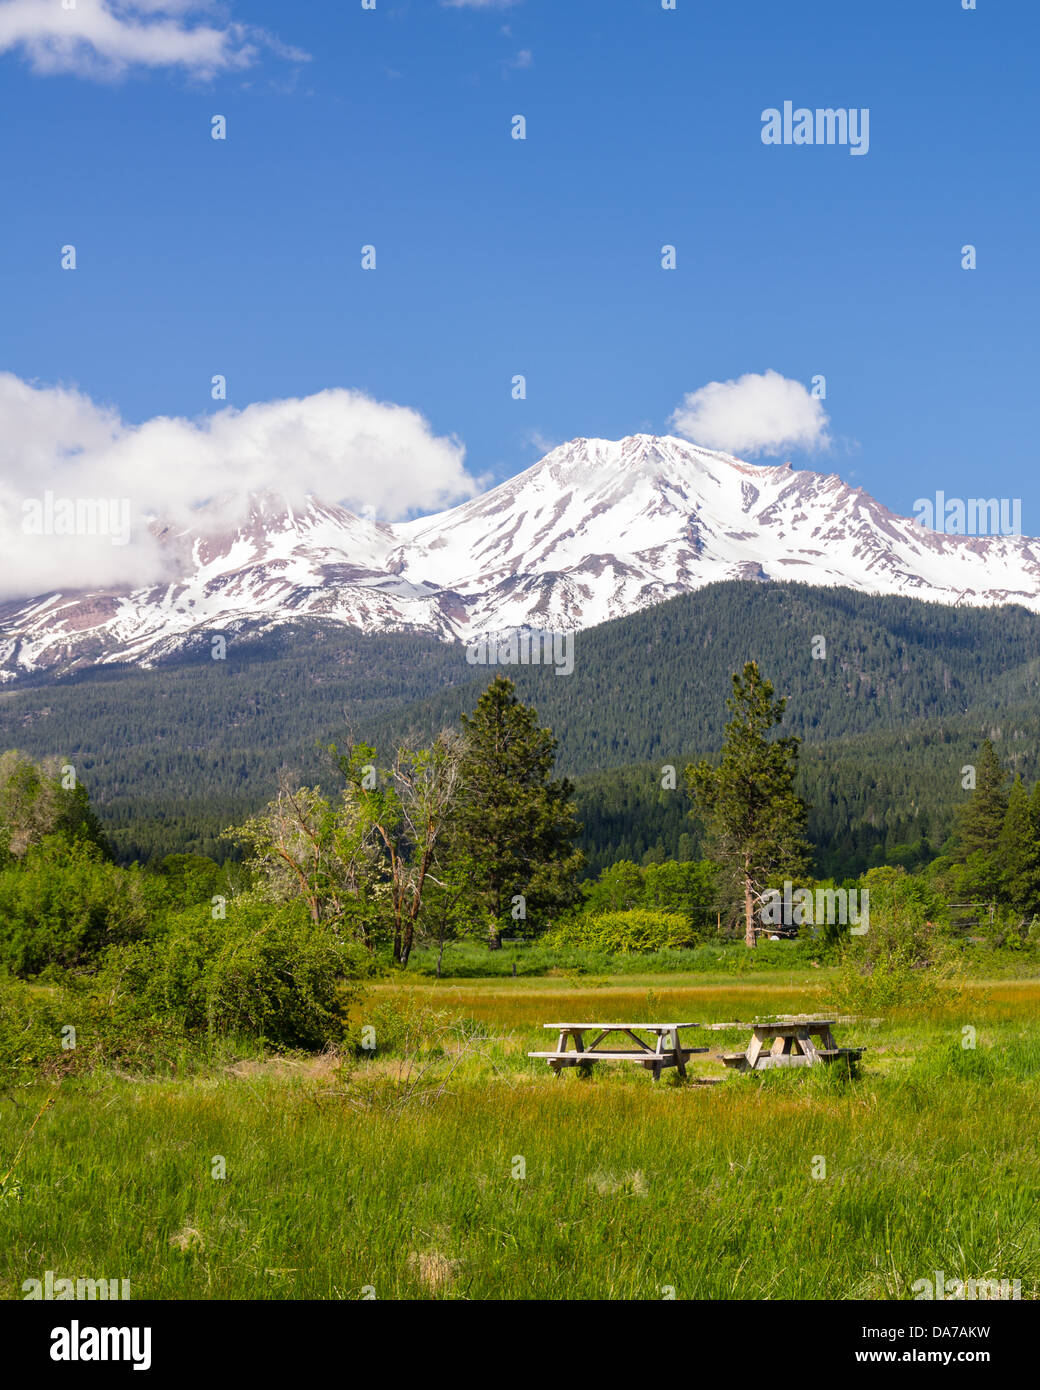 Mount Shasta California United States.  View of Mt Shasta showing picnic tables in a park - Stock Image